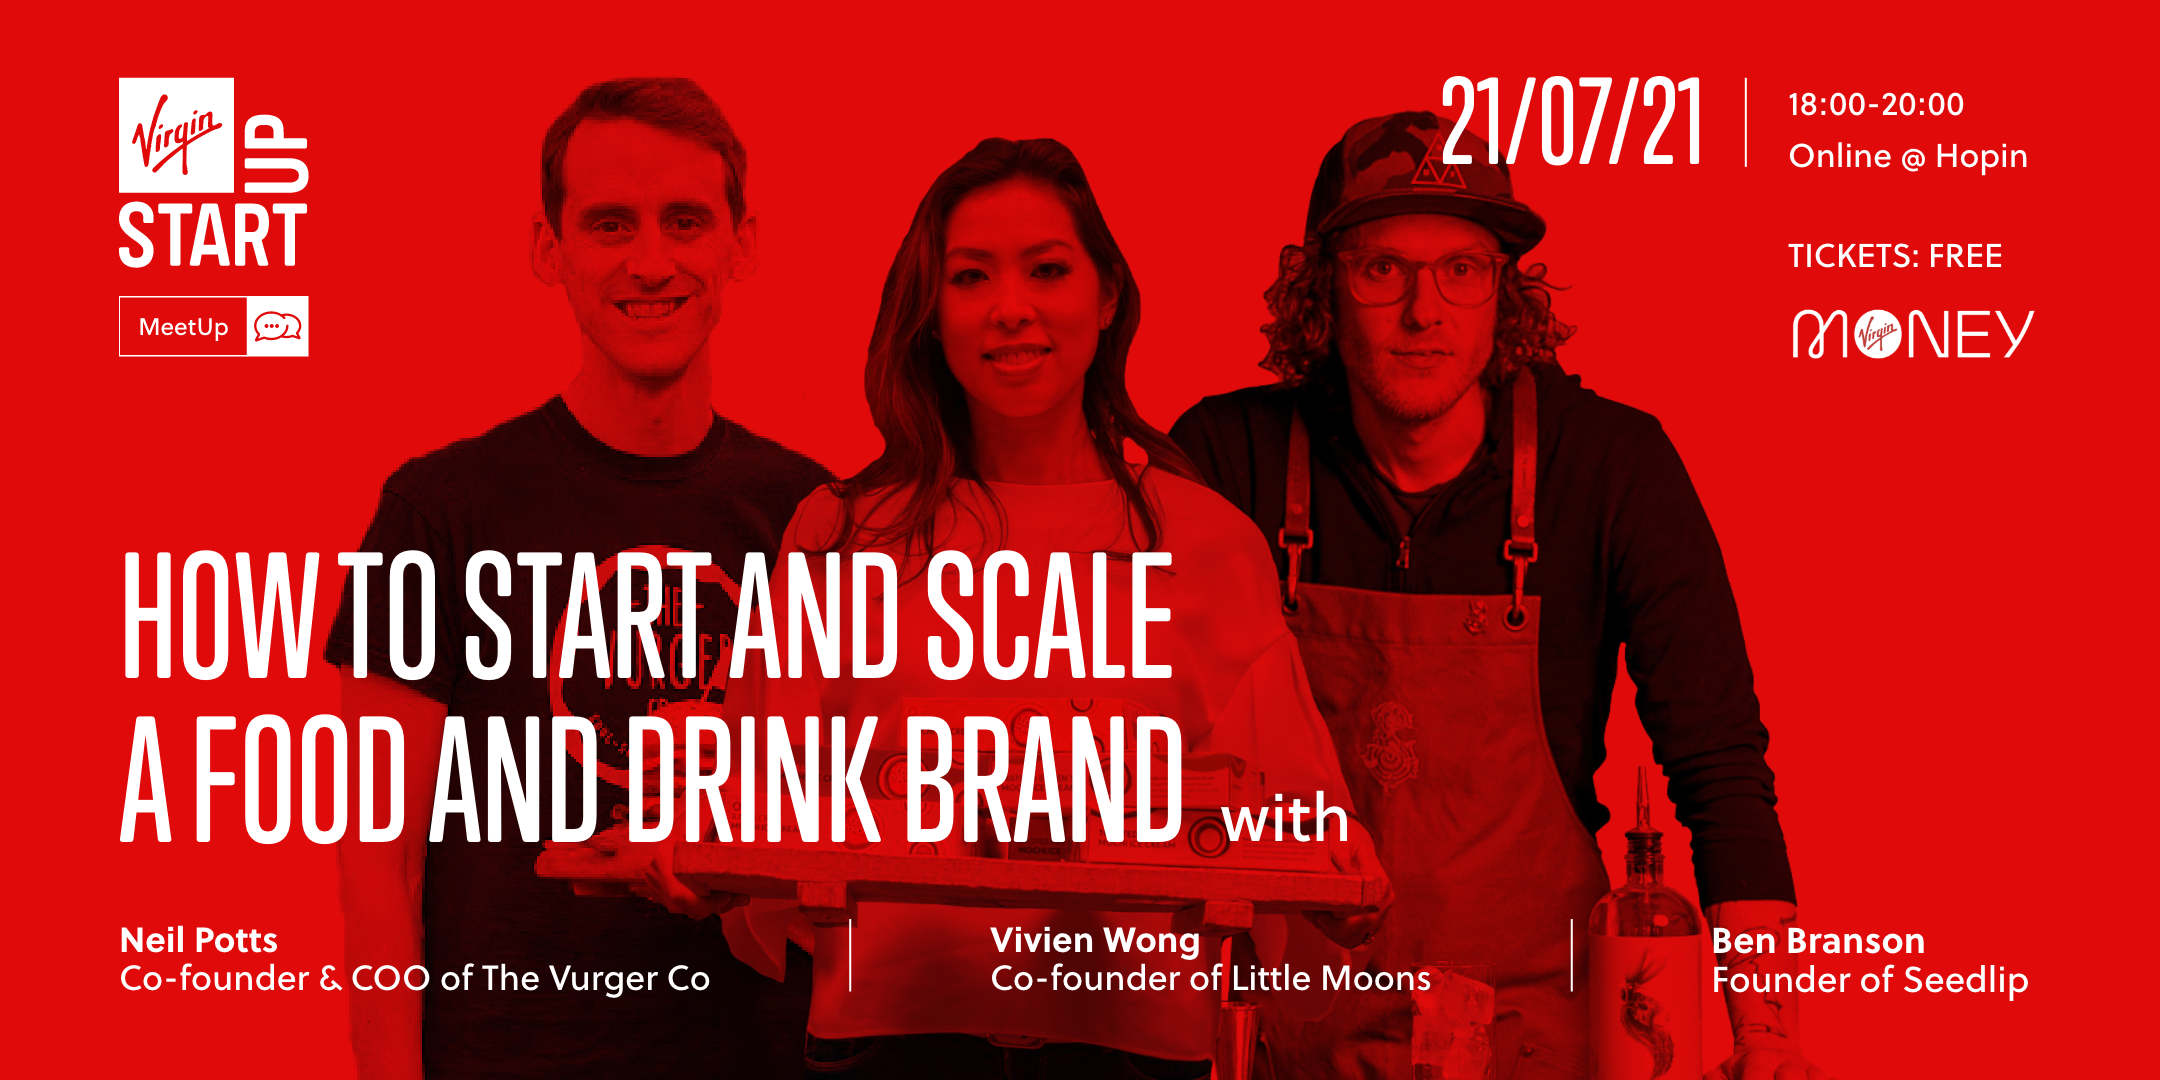 Virgin StartUp MeetUp Scale a food and drink brand